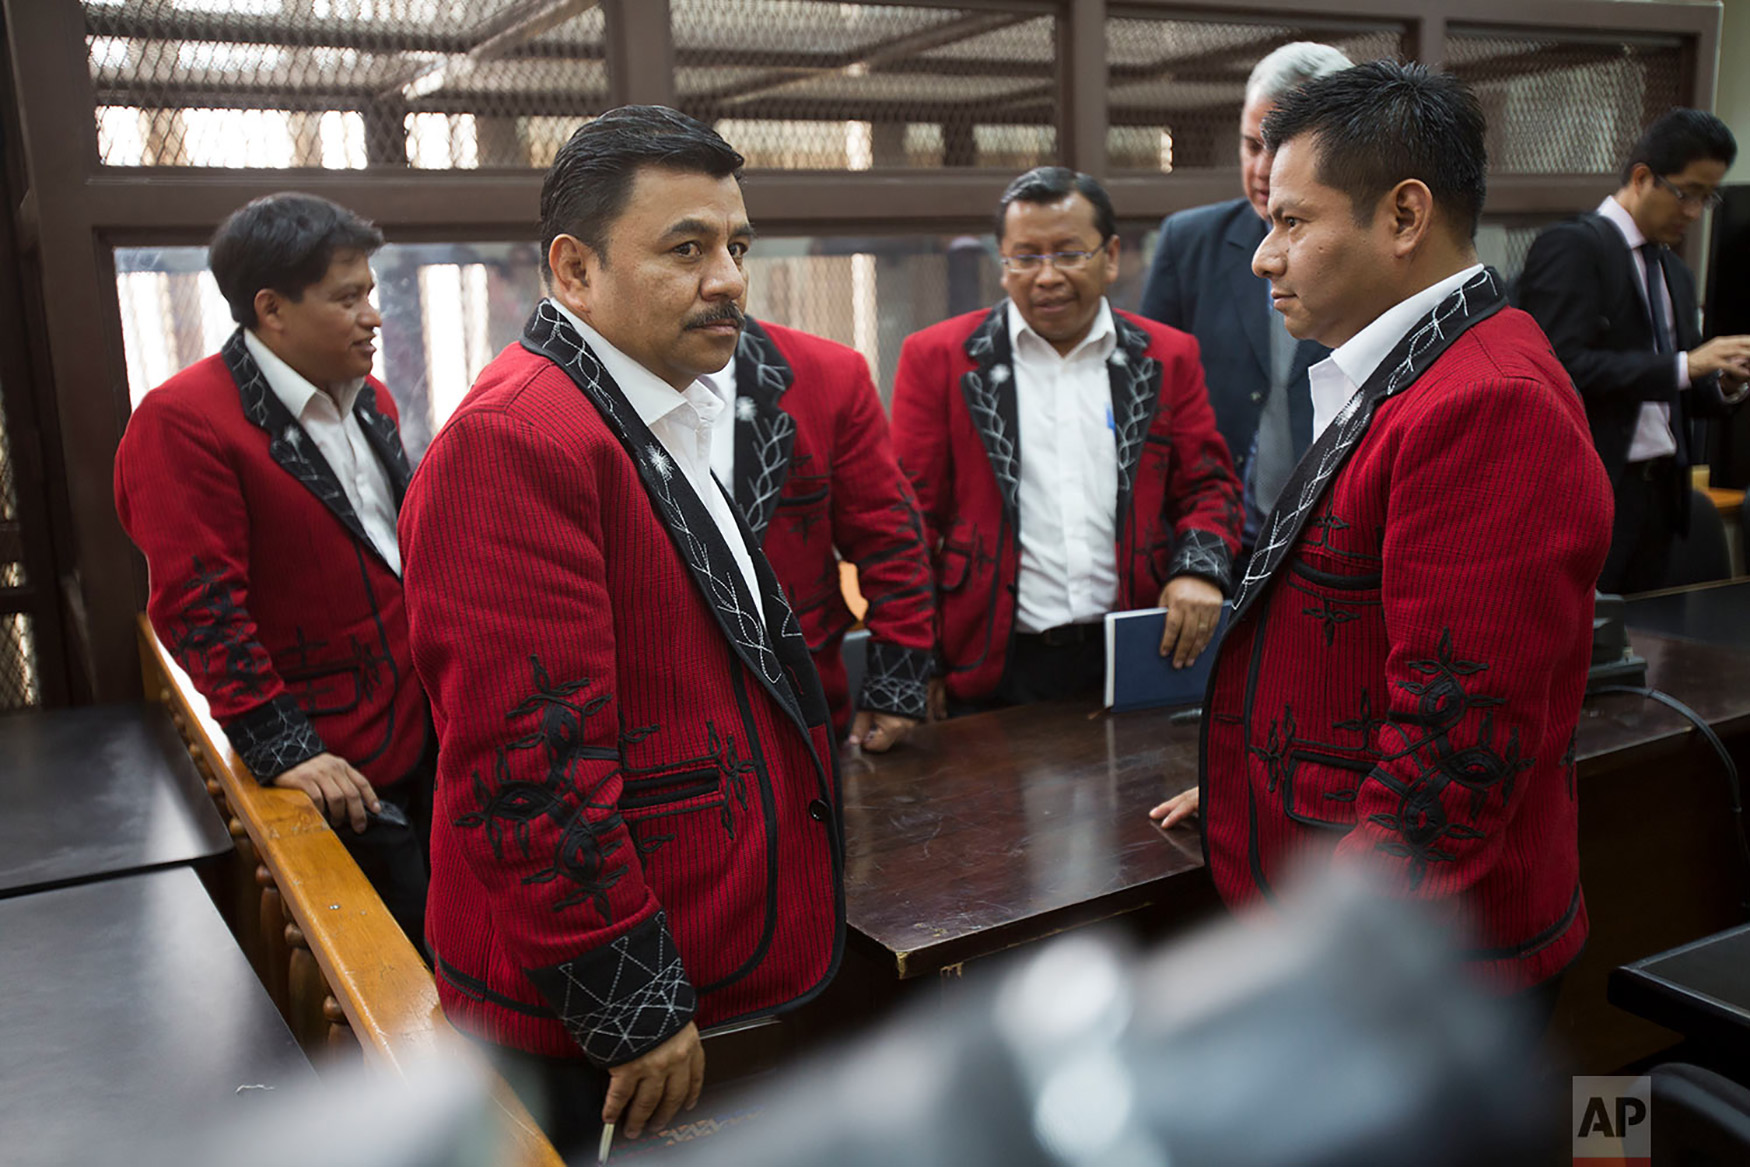 Lawyer Edgar Perez Archila, second from left, and his coworkers, representing the Ixil population and wearing traditional jackets, stand in the courtroom during the last hearing of the former director of military intelligence, Jose Rodriguez Sanchez in Guatemala City, Sept. 26, 2018. Rodriguez Sanchez awaits a new sentence for the crime of genocide, for which he was previously tried along with the late former dictator Efrain Rios Montt in 2013. (AP Photo/Moises Castillo)